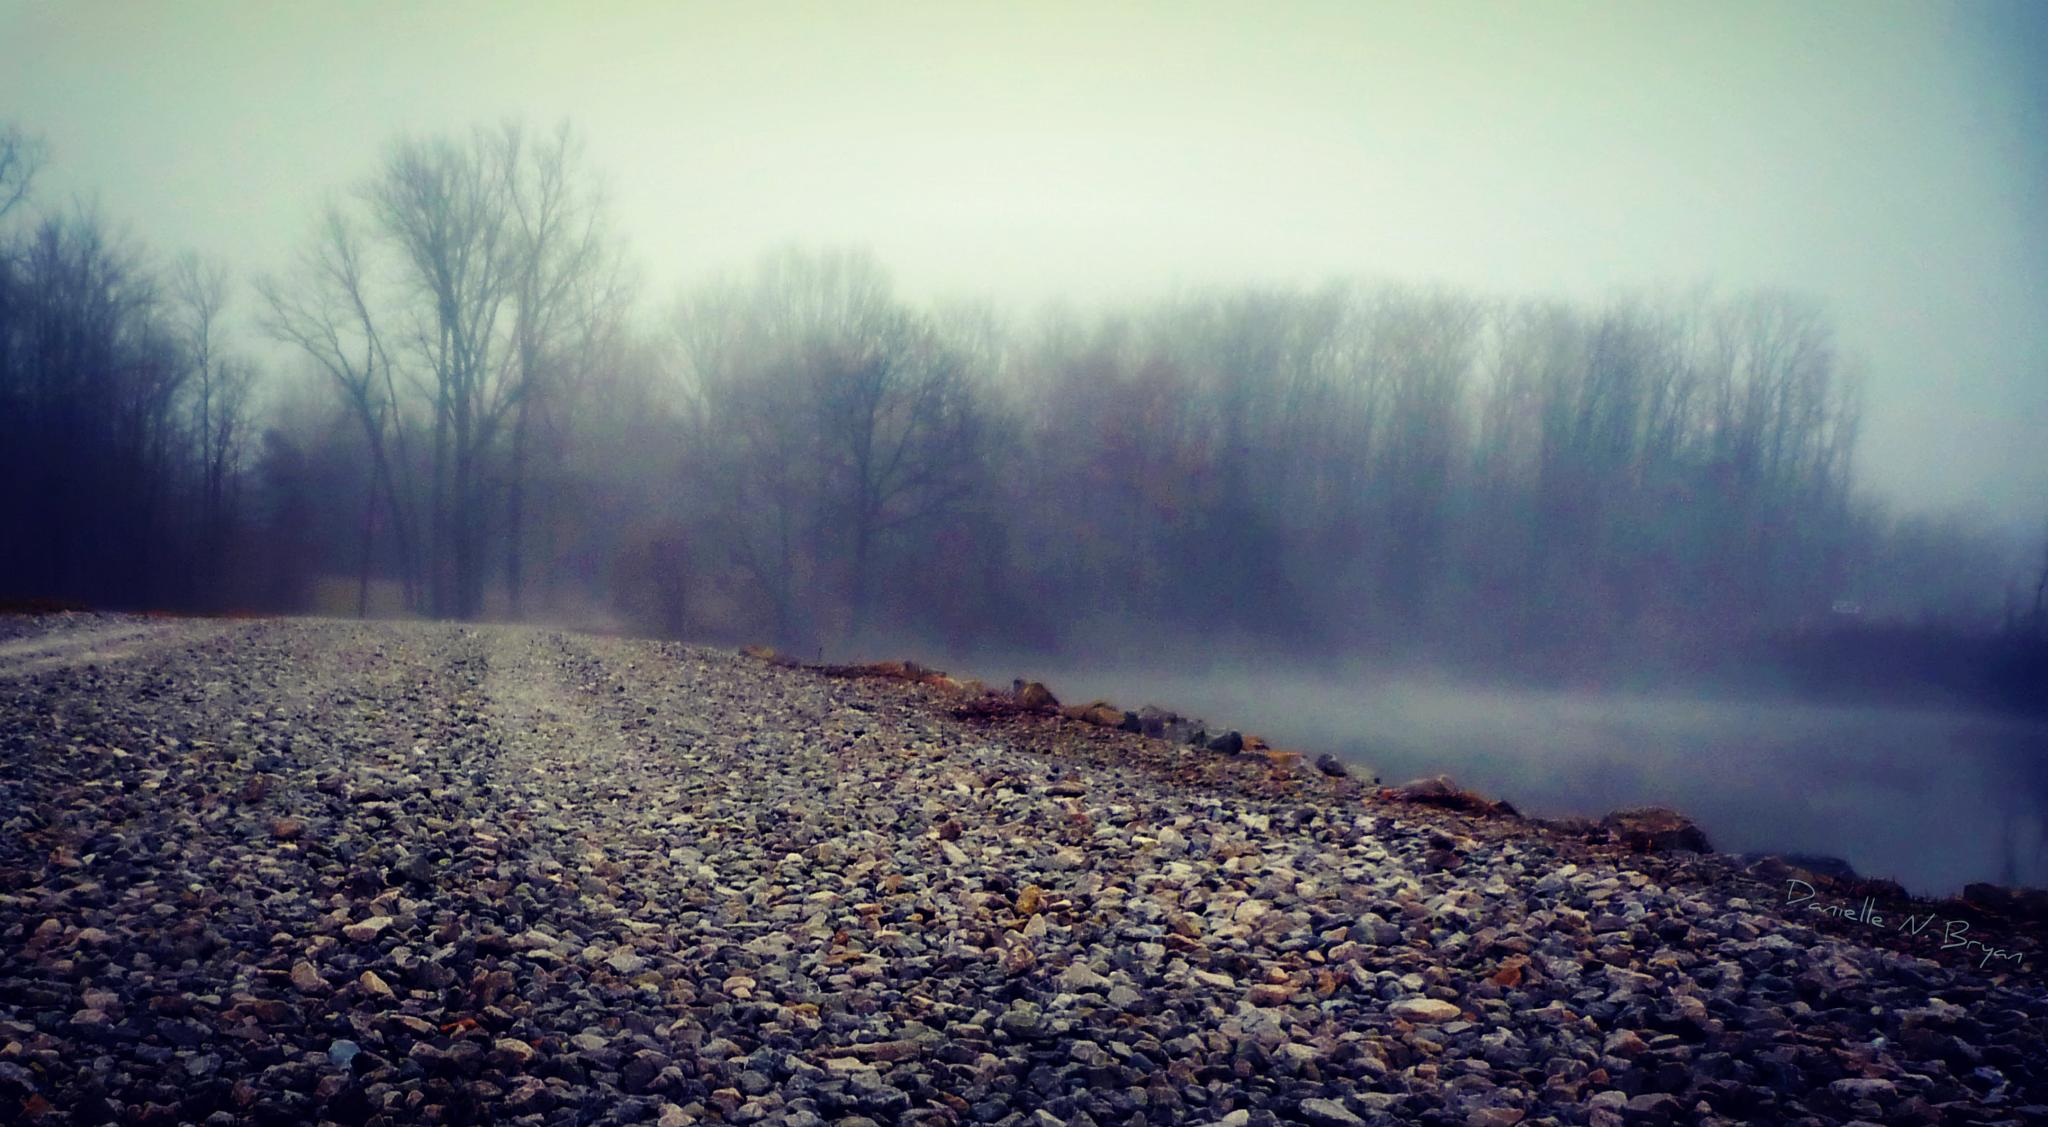 The Road Less Traveled 2 by danielle.bryan.77770